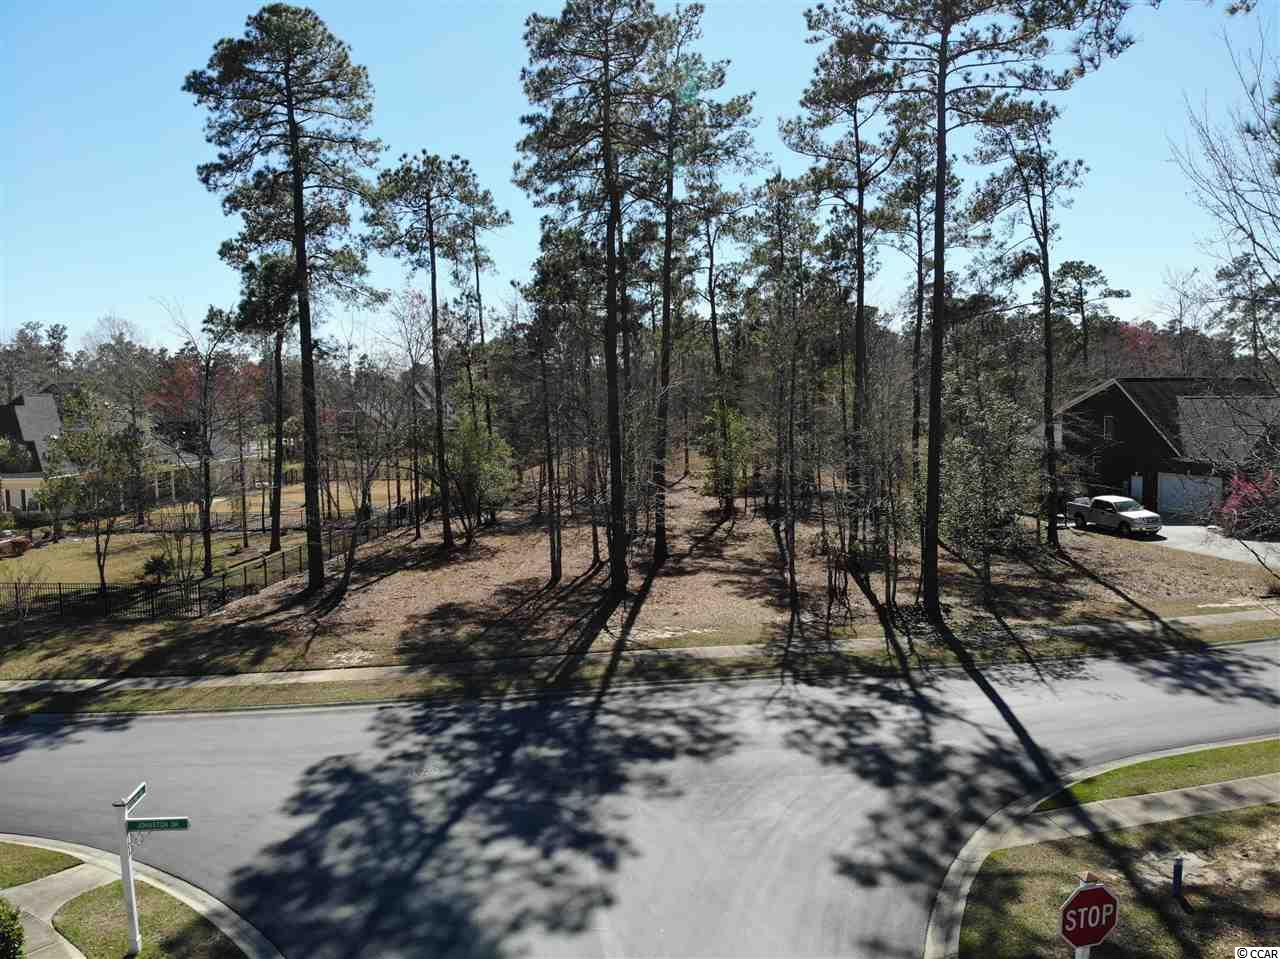 Imagine building your dream home on this gorgeous residential lot in the exclusive gated community of Cypress River Plantation. This lot boast 0.69 acres and sits overlooking Tillman Lake. No time-frame to build and choose your own builder. Enjoy everything Cypress River Plantation has to offer including the pool, tennis court and community dock access. This community is conveniently located near everything Myrtle Beach has to offer- including Myrtle Beach International Airport - and close to fine dining, shopping, entertainment and much more. Come make Cypress River Plantation your new home.